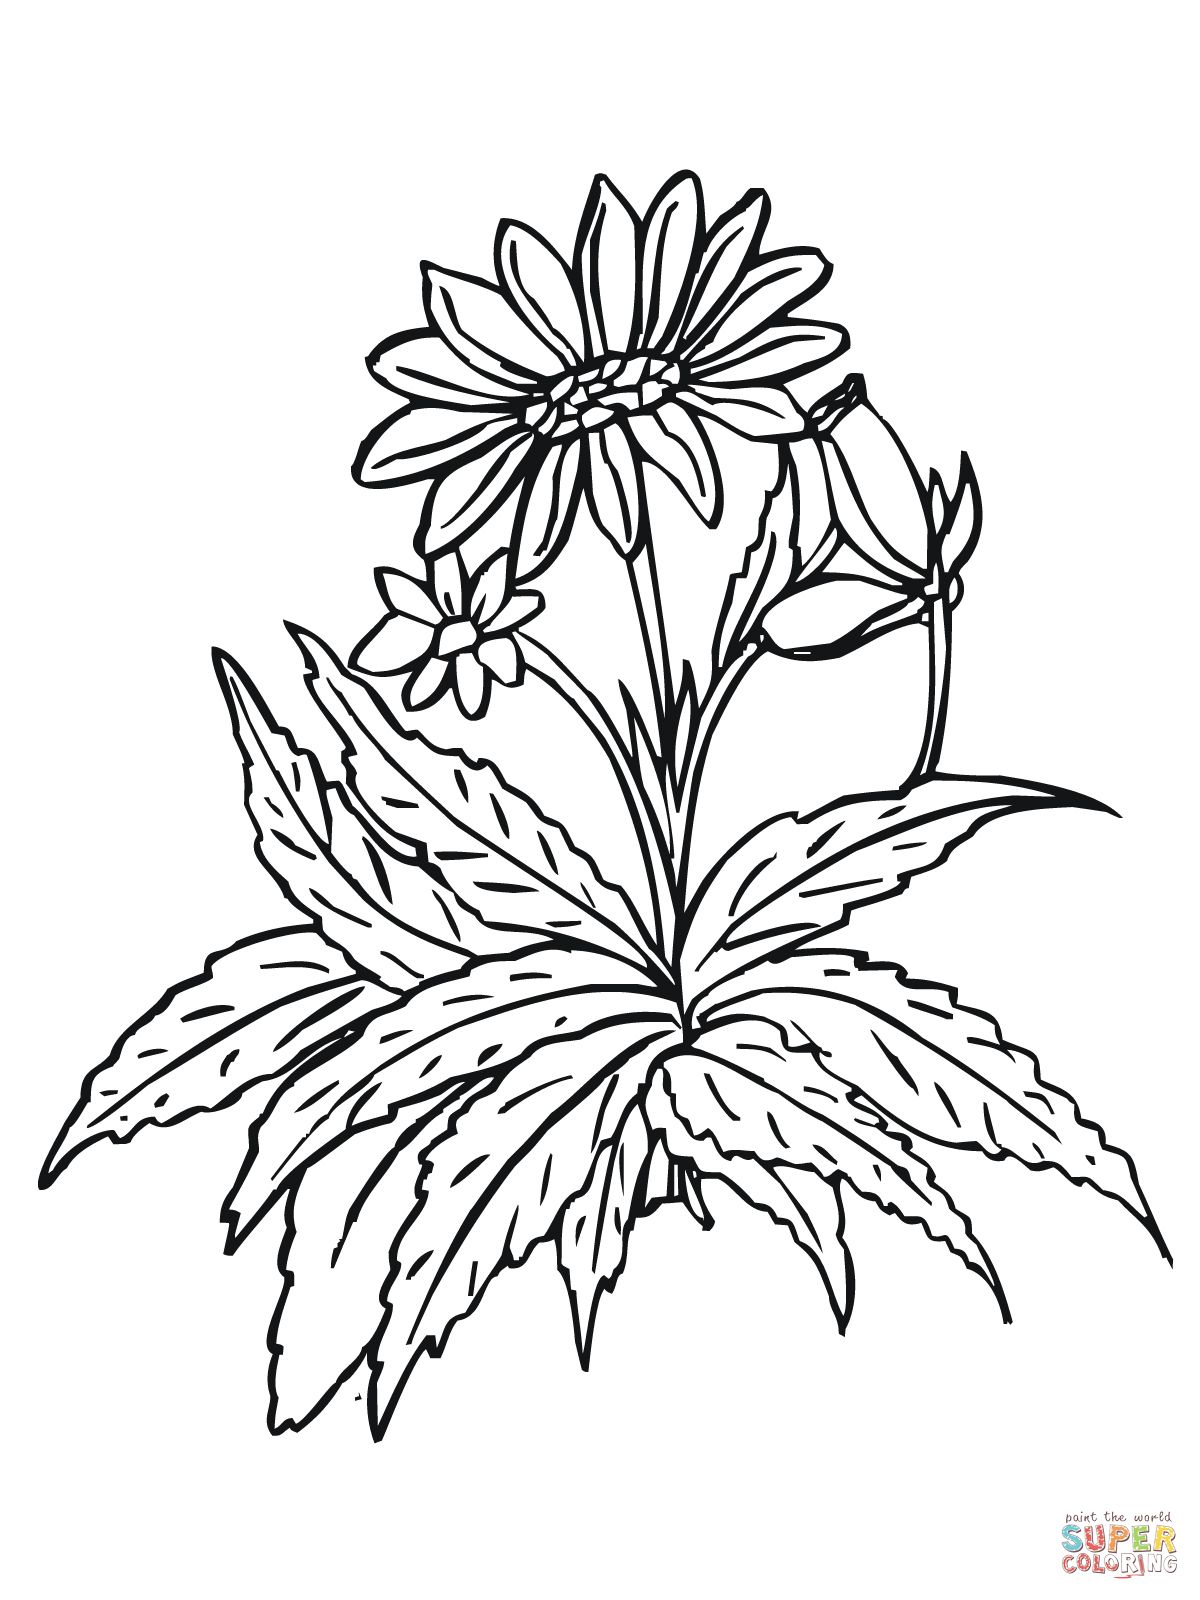 Sunflowers coloring page | SuperColoring.com | [ color your world ...